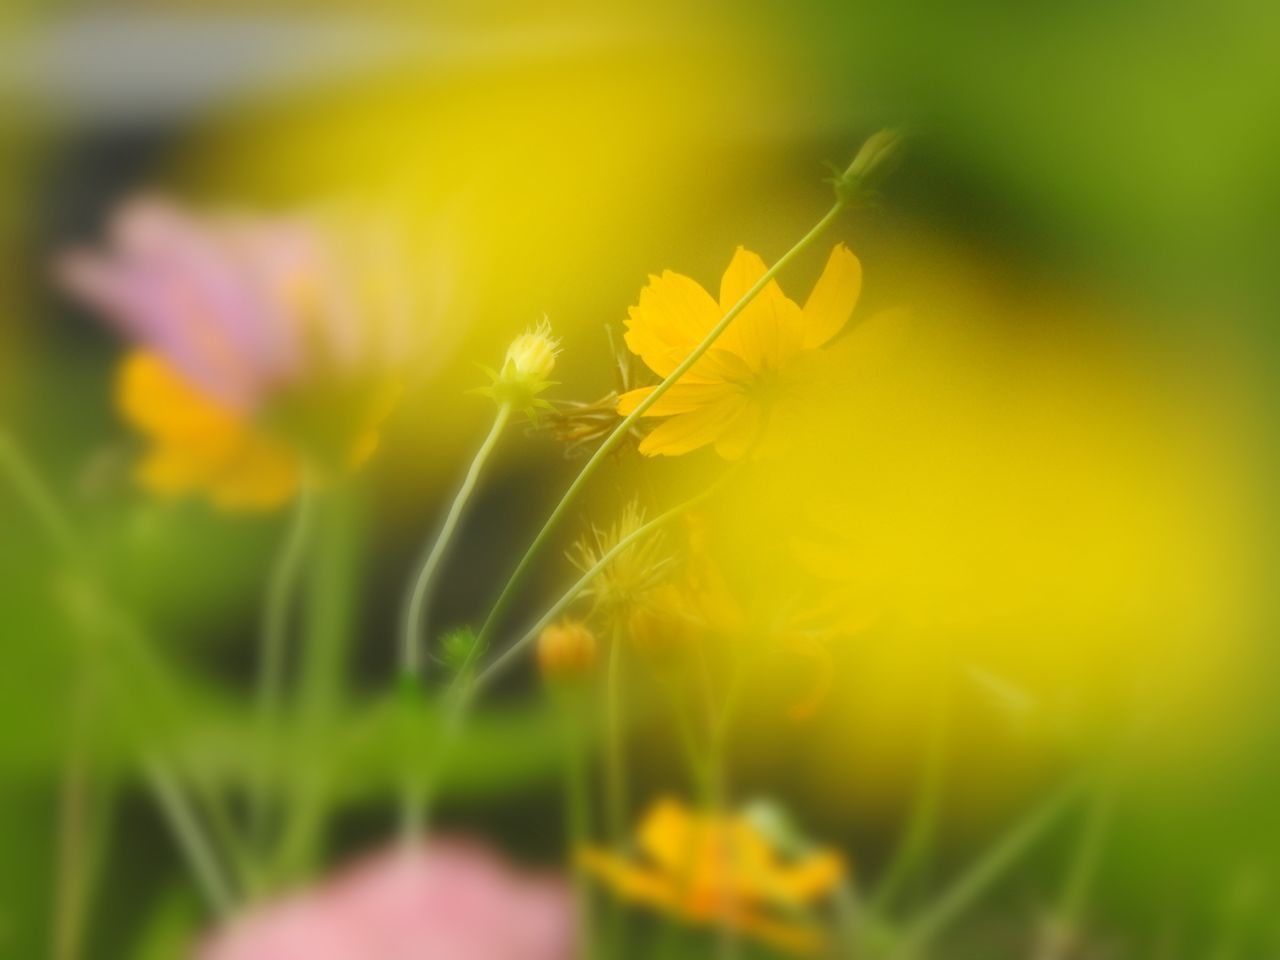 flower, nature, yellow, growth, fragility, plant, beauty in nature, selective focus, close-up, green color, no people, freshness, grass, outdoors, flower head, day